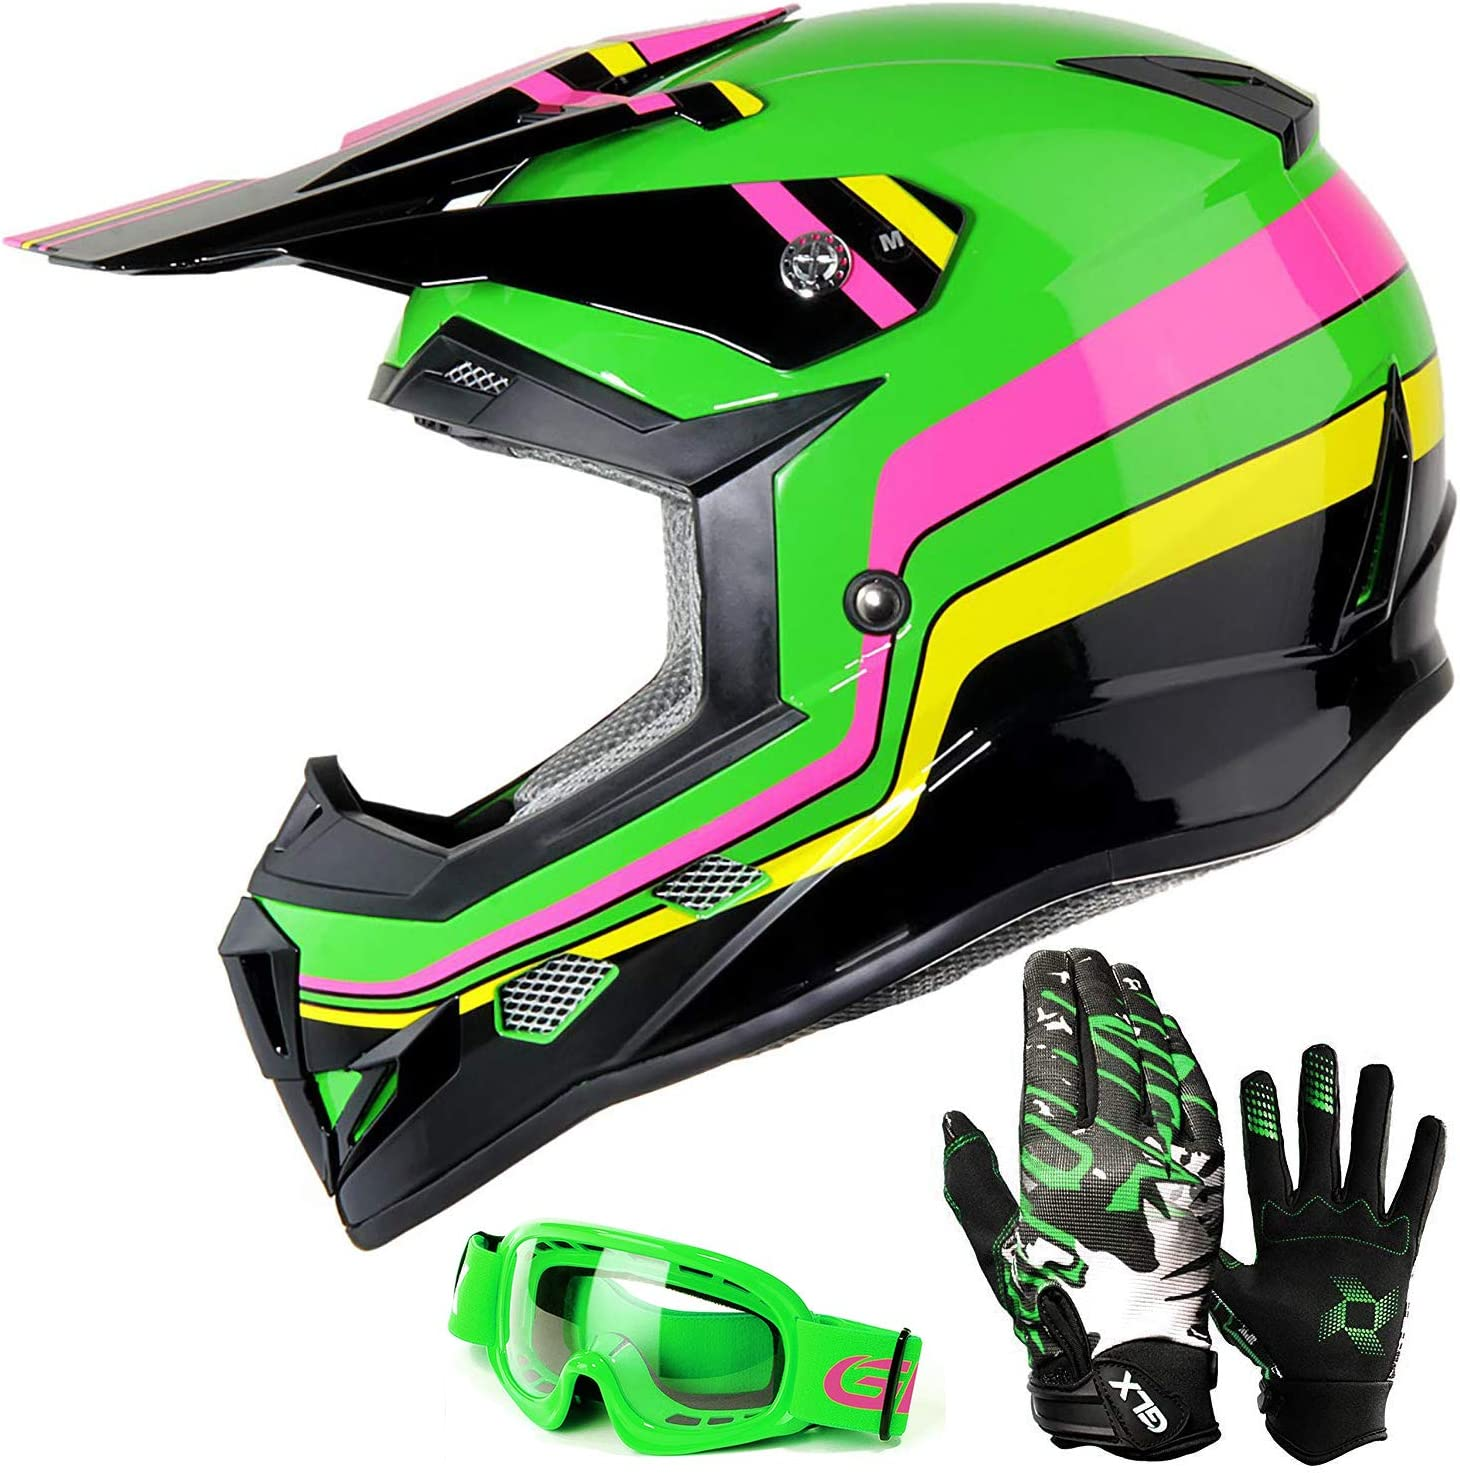 Youth-M, Green//Silver ILM Youth Kids ATV Motocross Dirt Bike Motorcycle BMX Downhill Off-Road MTB Mountain Bike Helmet DOT Approved